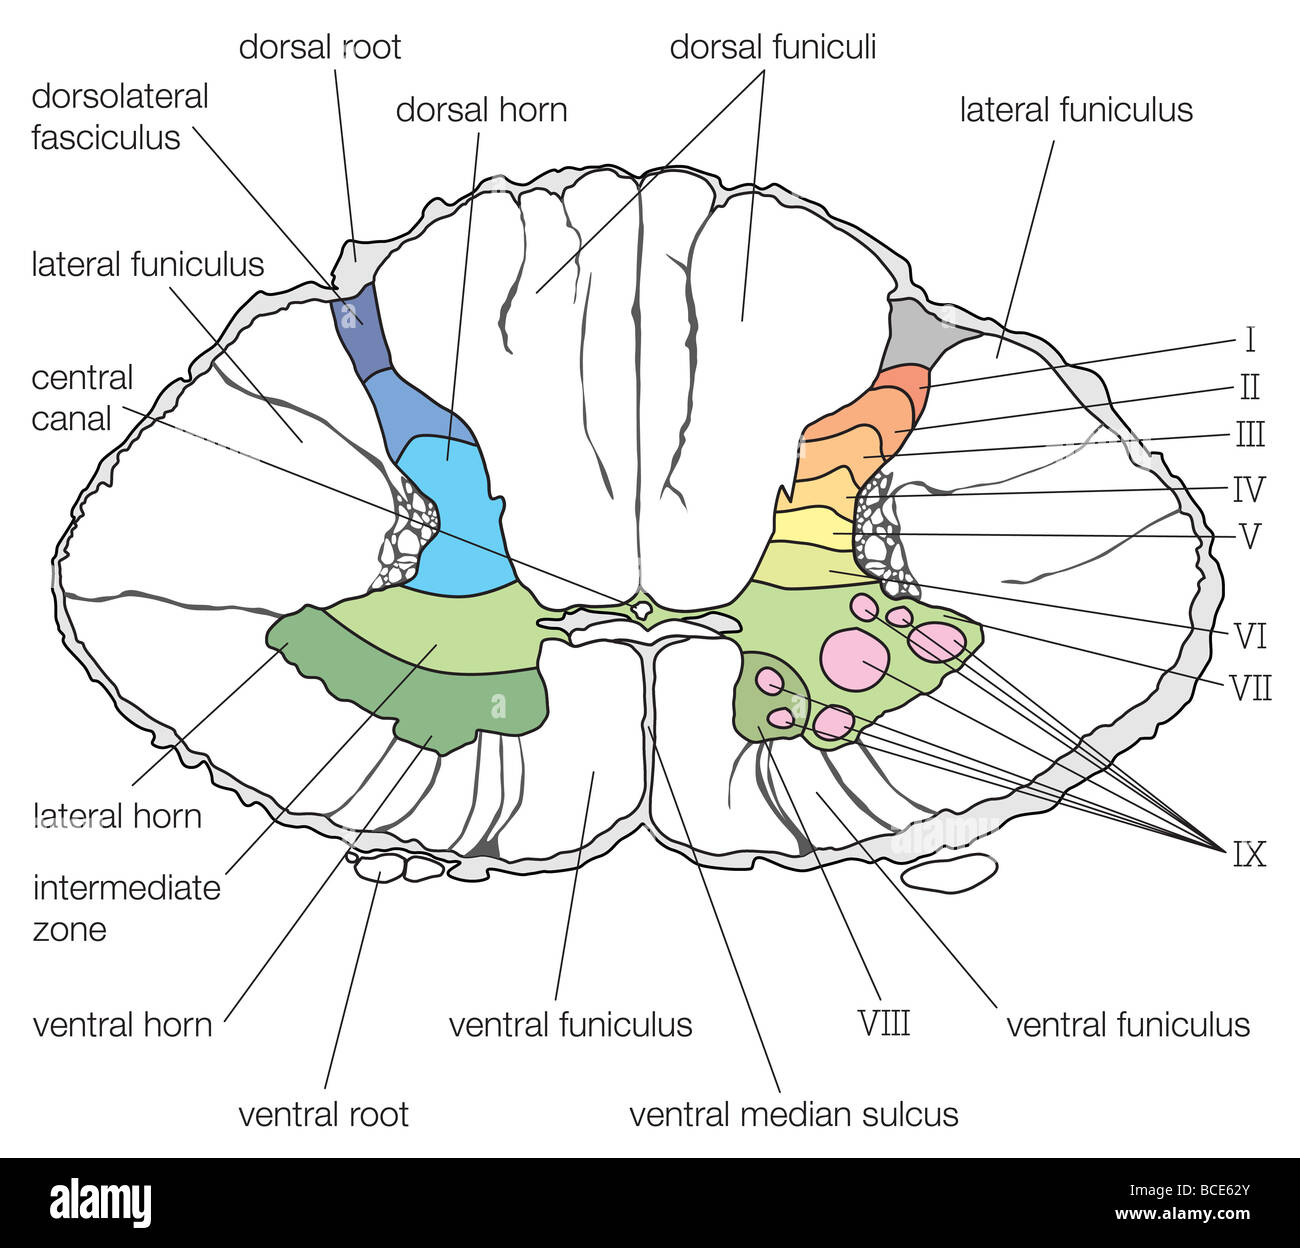 cross section spinal cord diagram labeled meyer snow stock photos images a of the lower cervical segment showing cytoarchitectural lamination